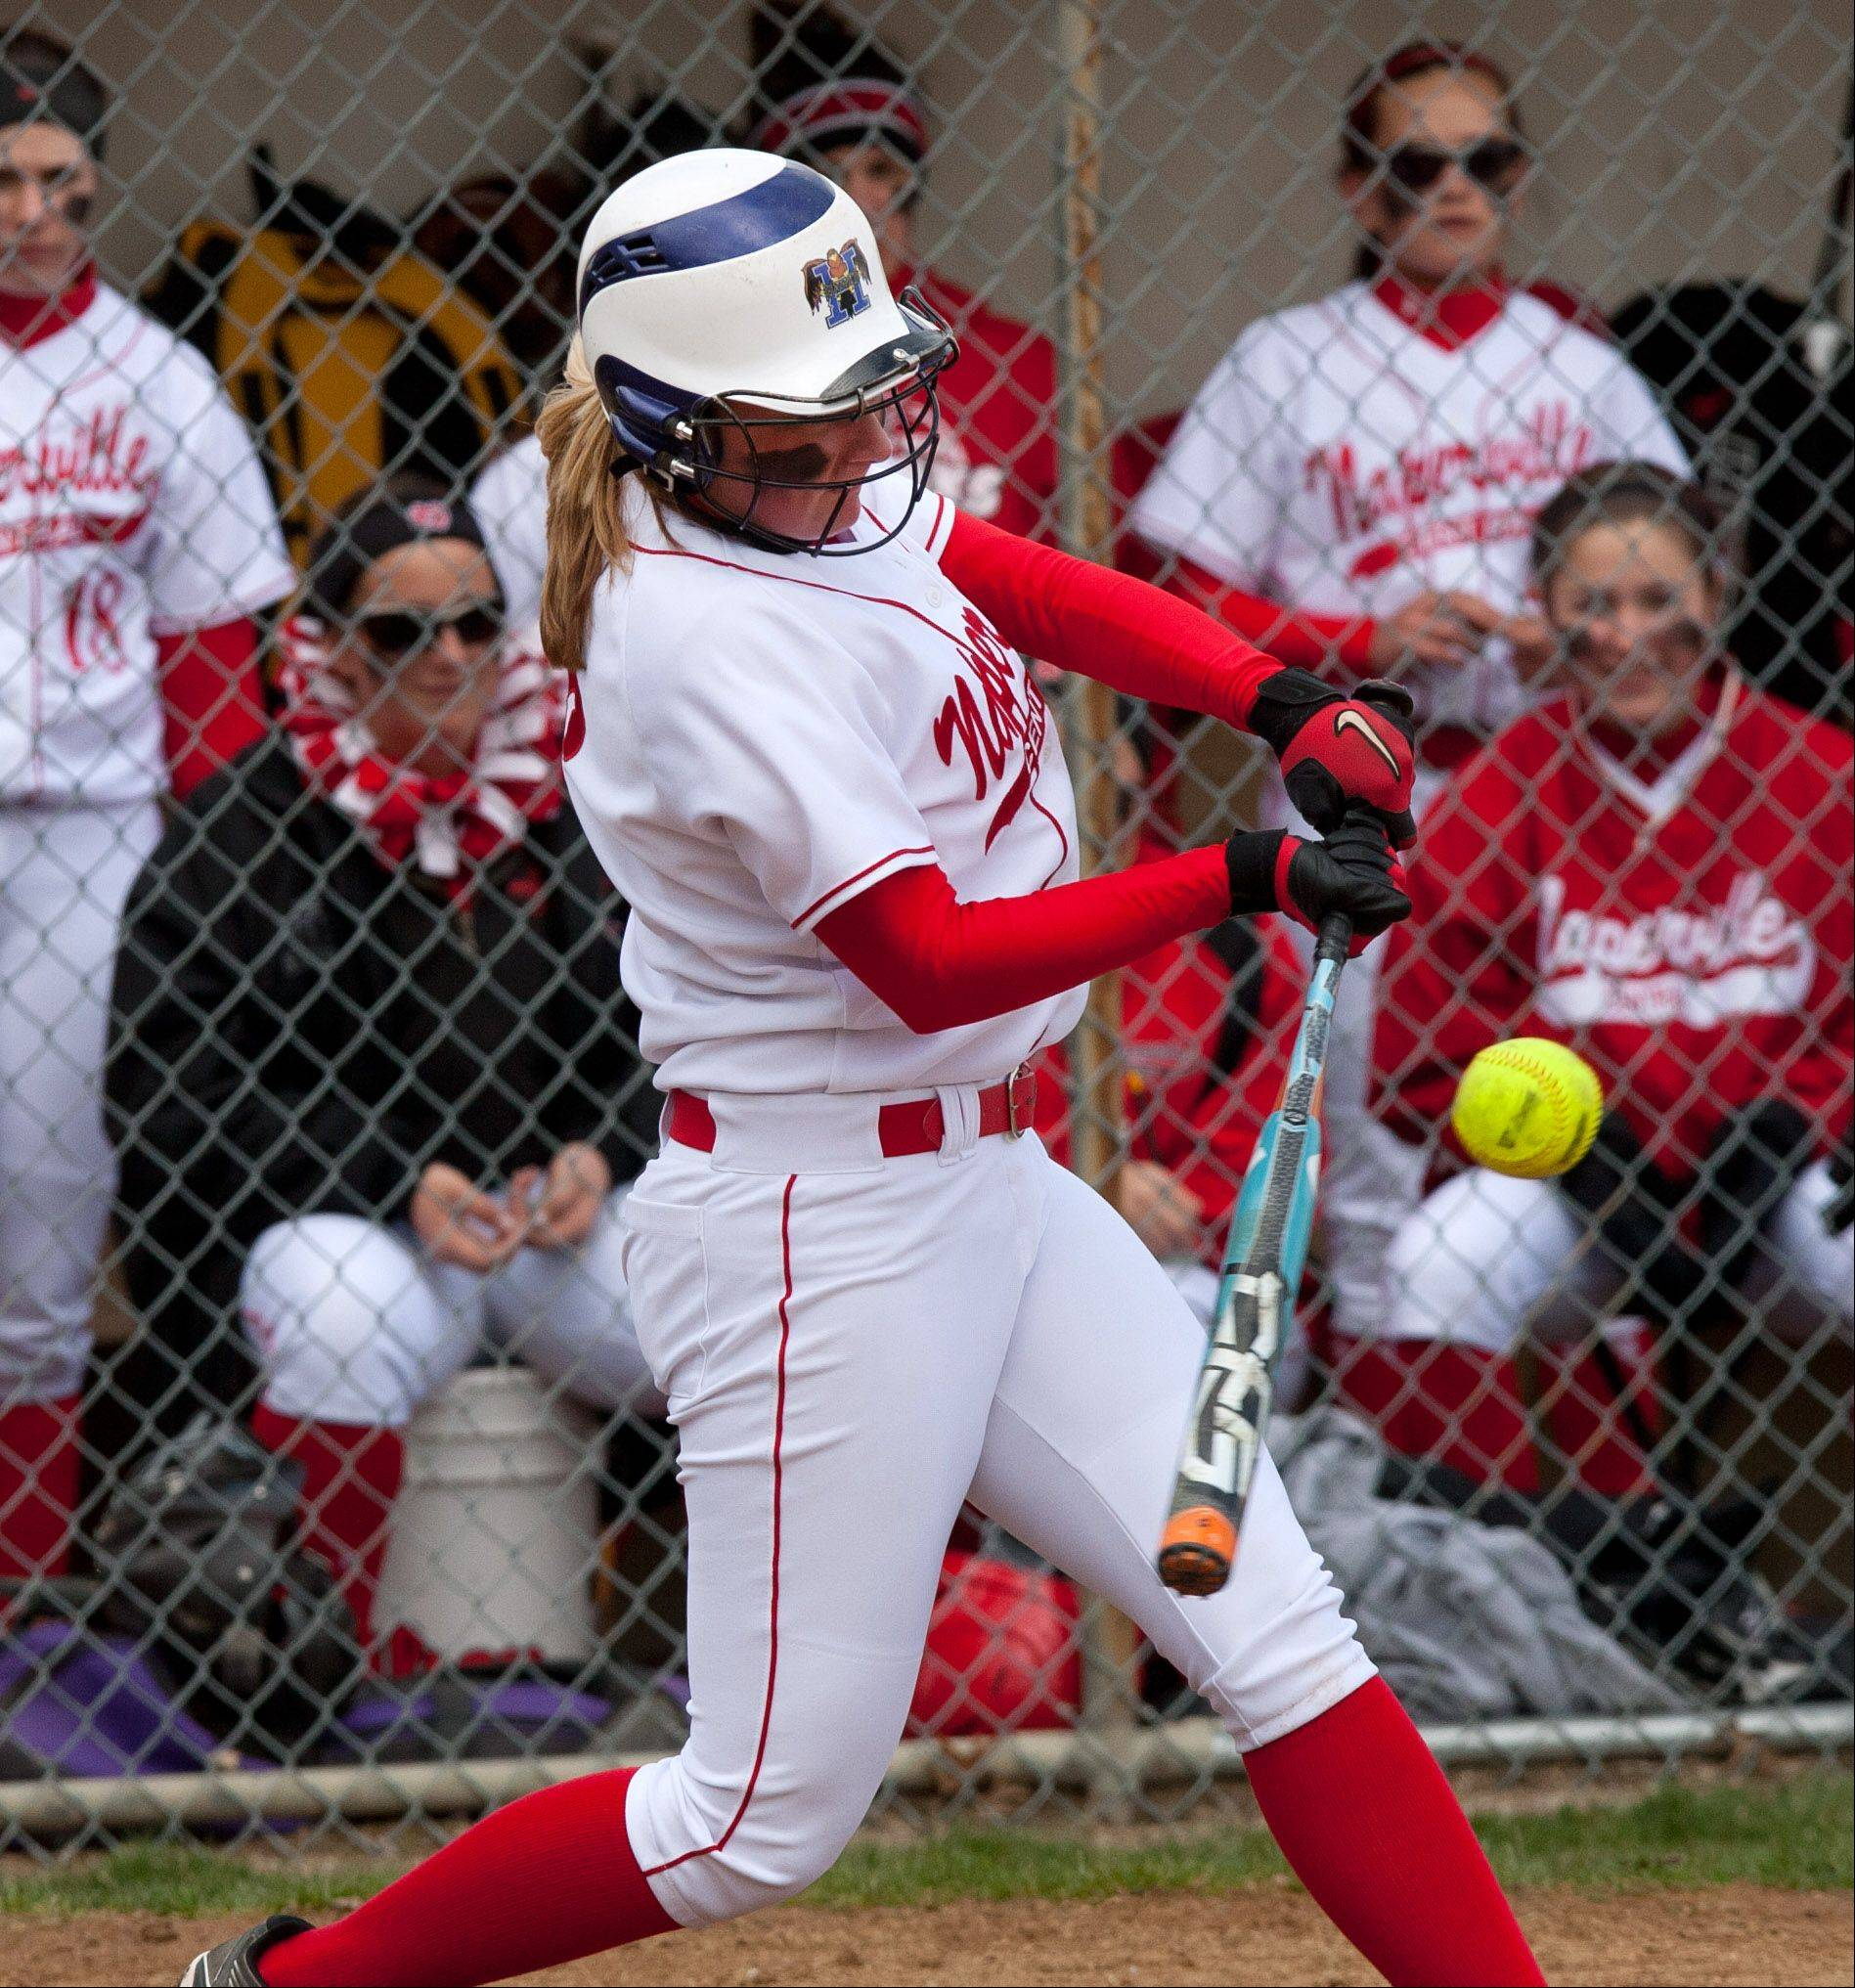 Naperville Central's Megan Nerger doubles home a run against Neuqua Valley on Saturday at Naperville Central.